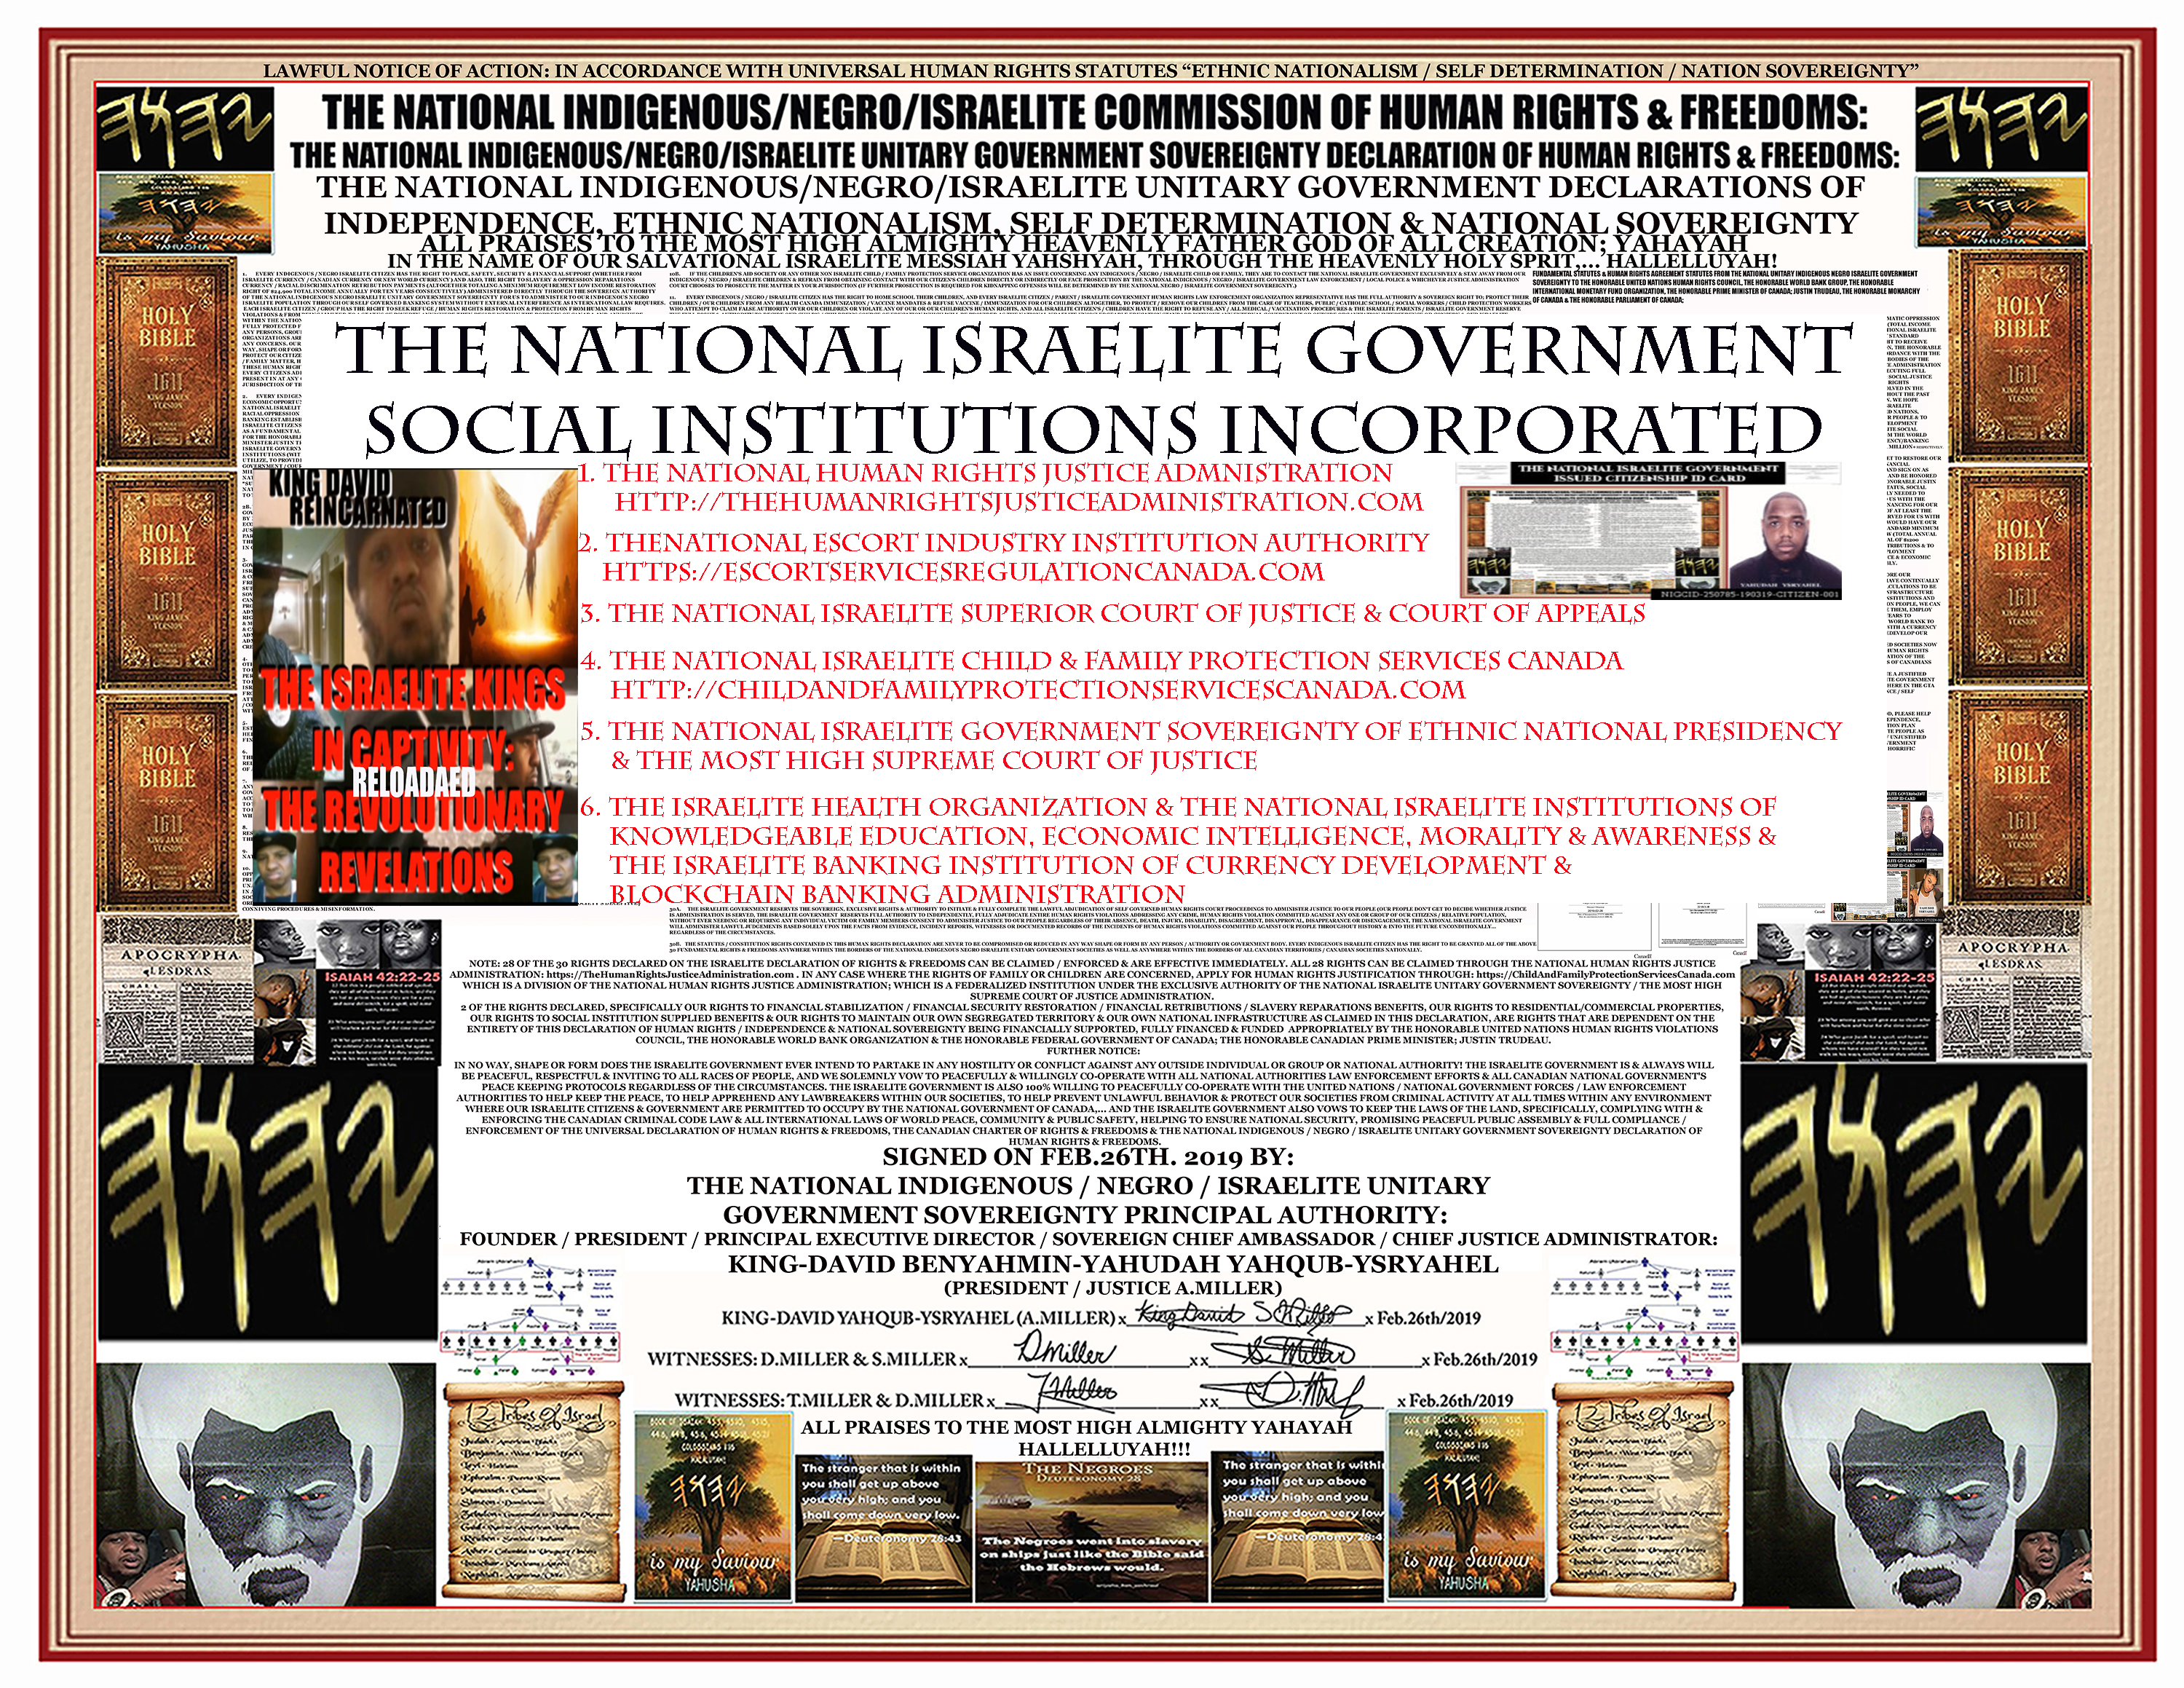 OFFICIAL9 DECLARATION OF NATIONAL ISRAELITE RIGHTS & FREEDOMS SOCIAL INSTITUTIONS REDUCED